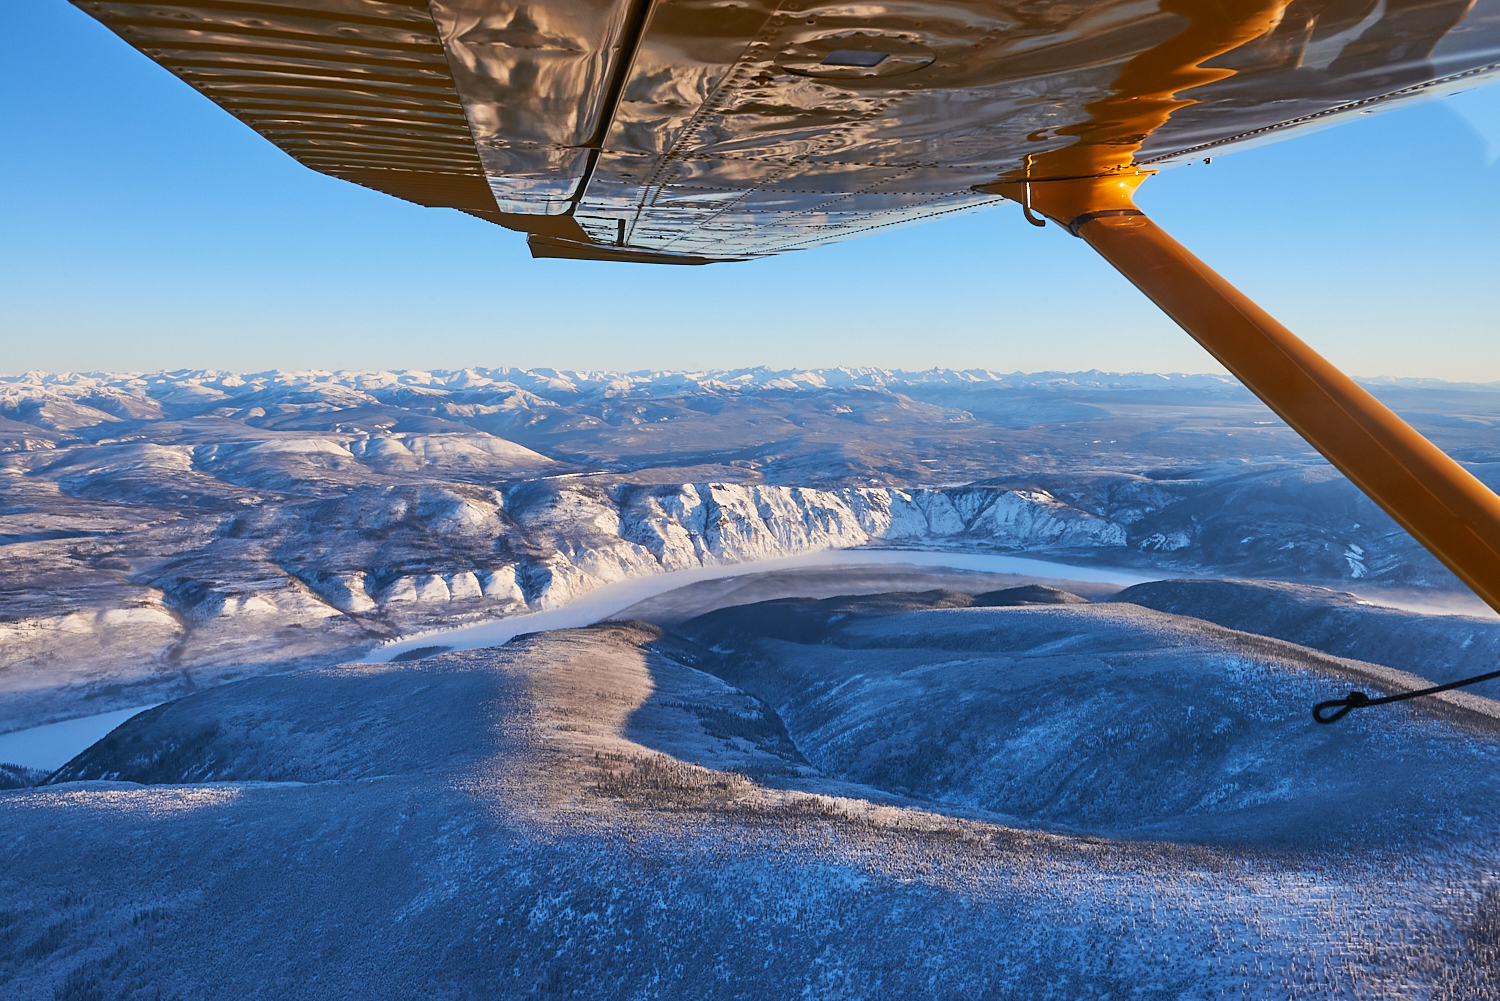 Flight From Eagle To Dawson - This year I was fortunate enough to fly from Eagle to Dawson City. Eagle is a small town of about 85 people located on the Yukon river near the border of Canada and Alaska. A mid morning flight allowed for nice light and a beautiful flight.